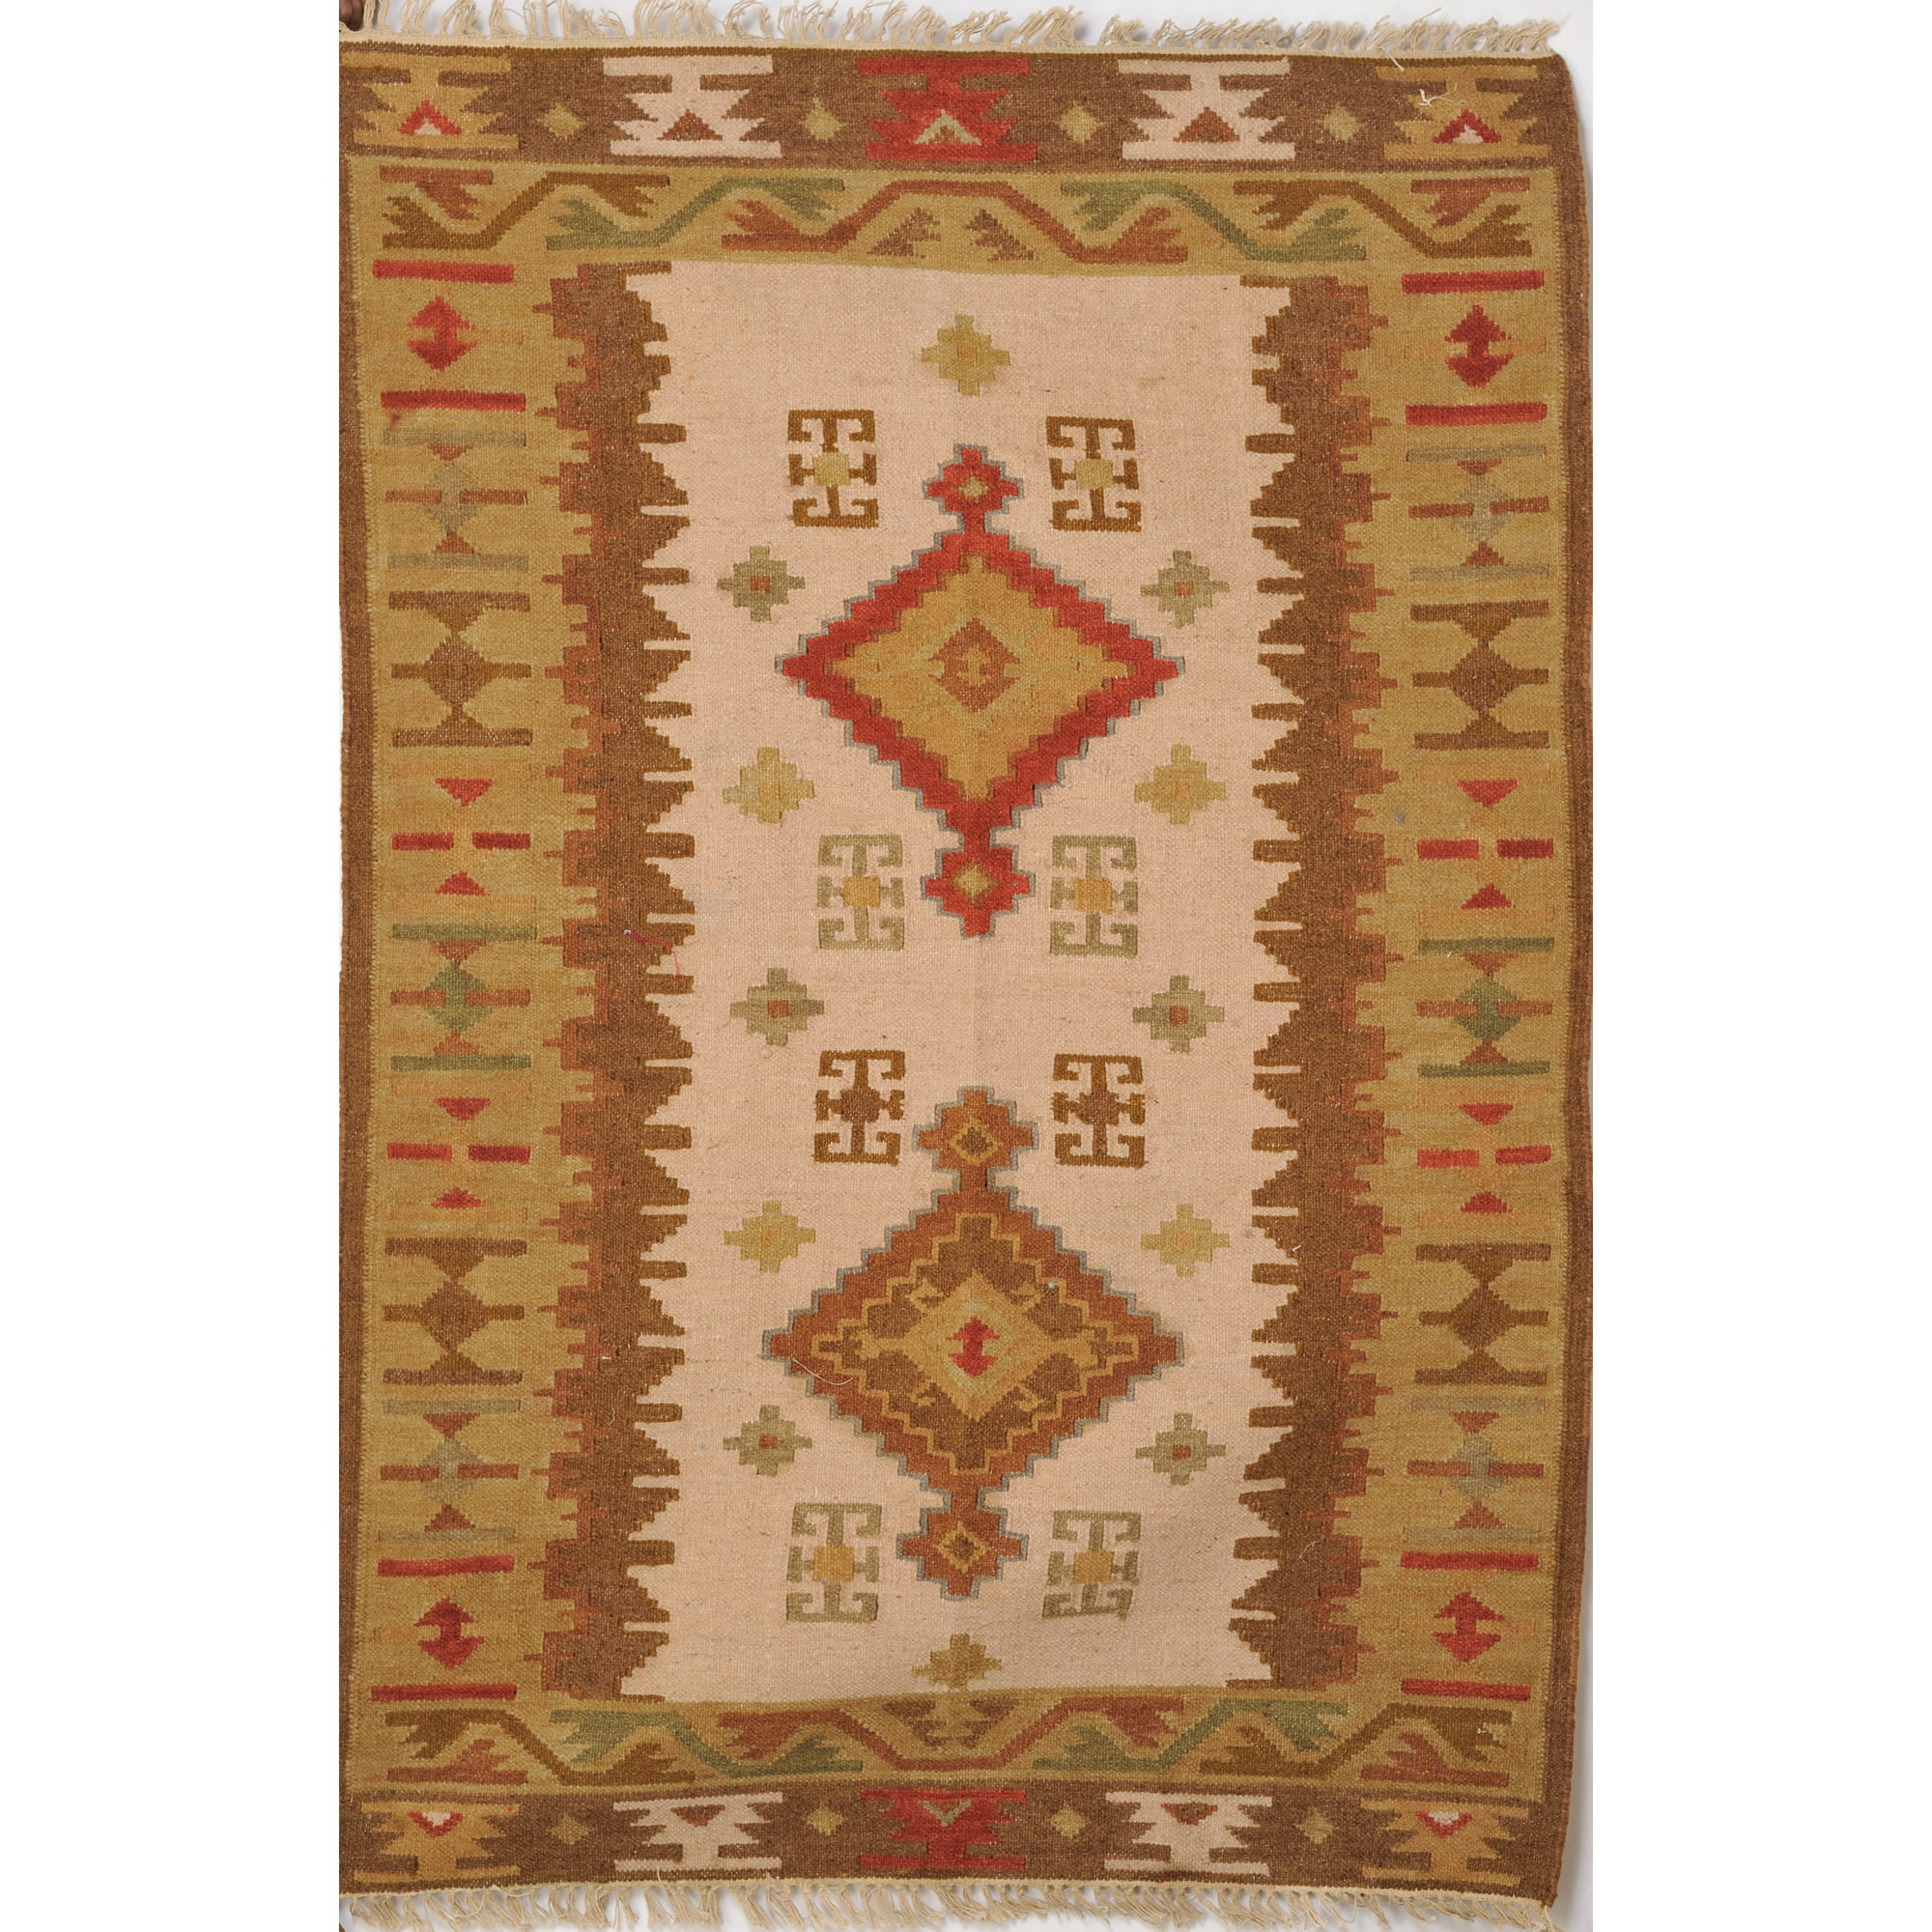 Beige and Brown Handloom Dhurrie from Sitapur with Woven Motifs